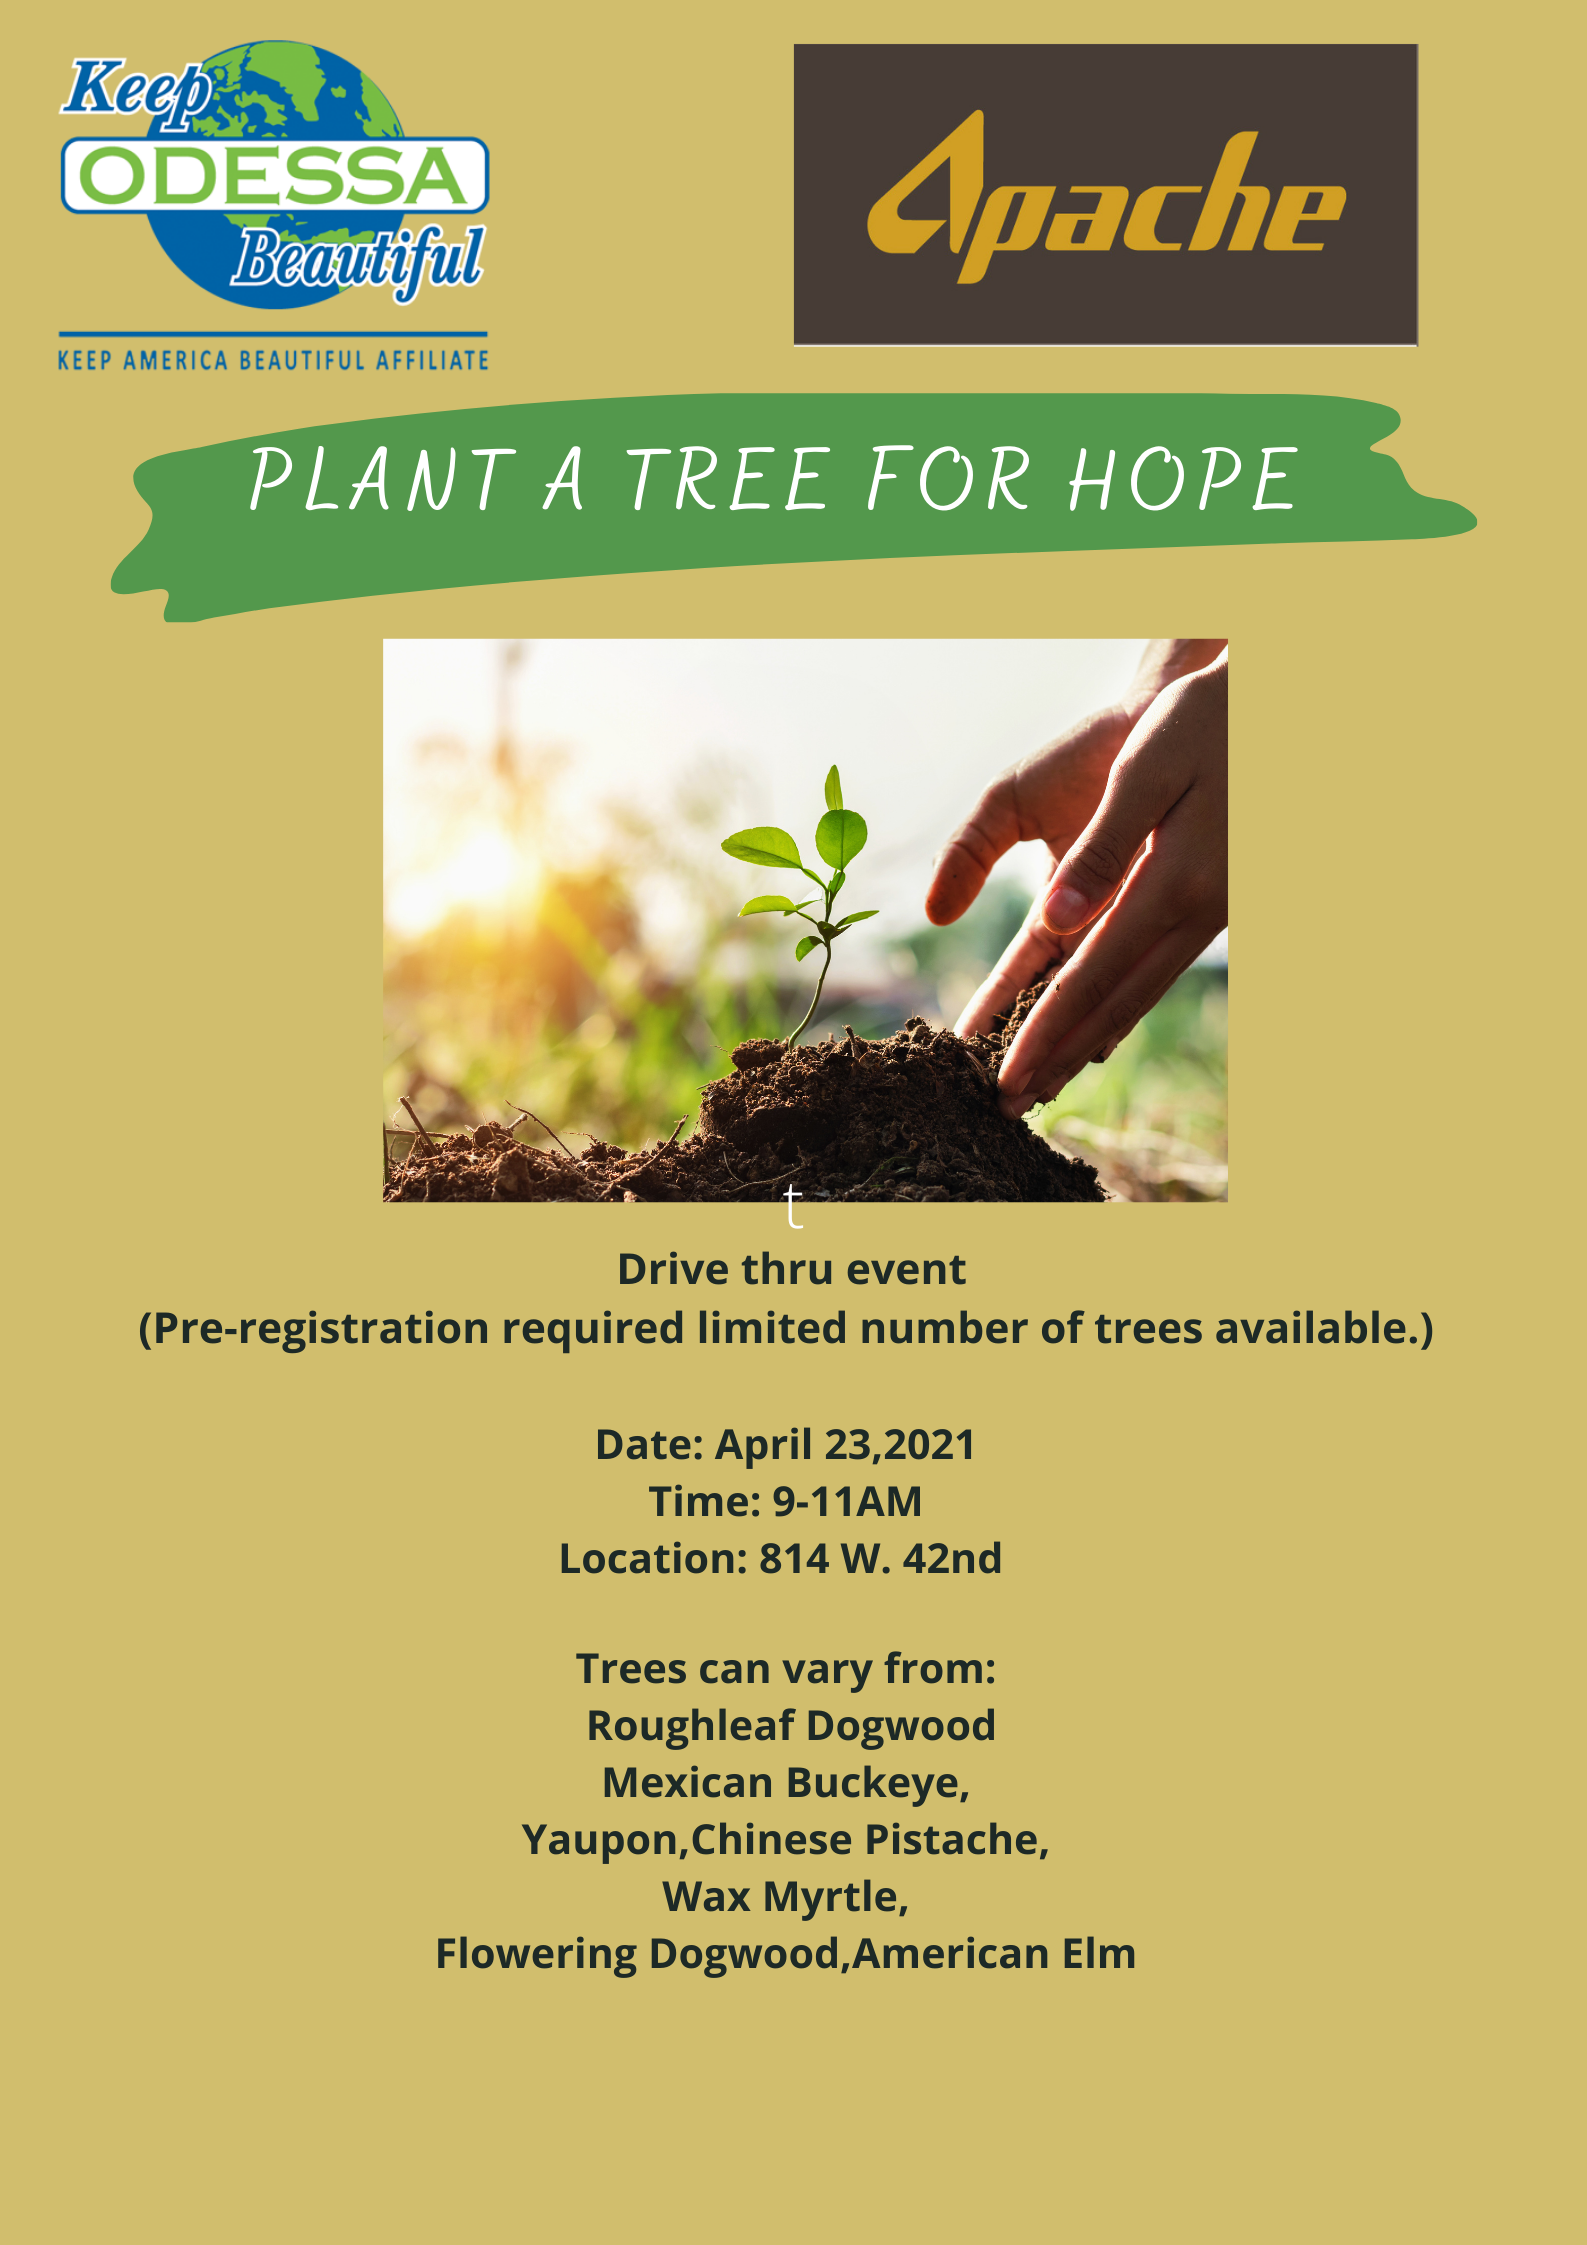 Plant a tree for hope event details